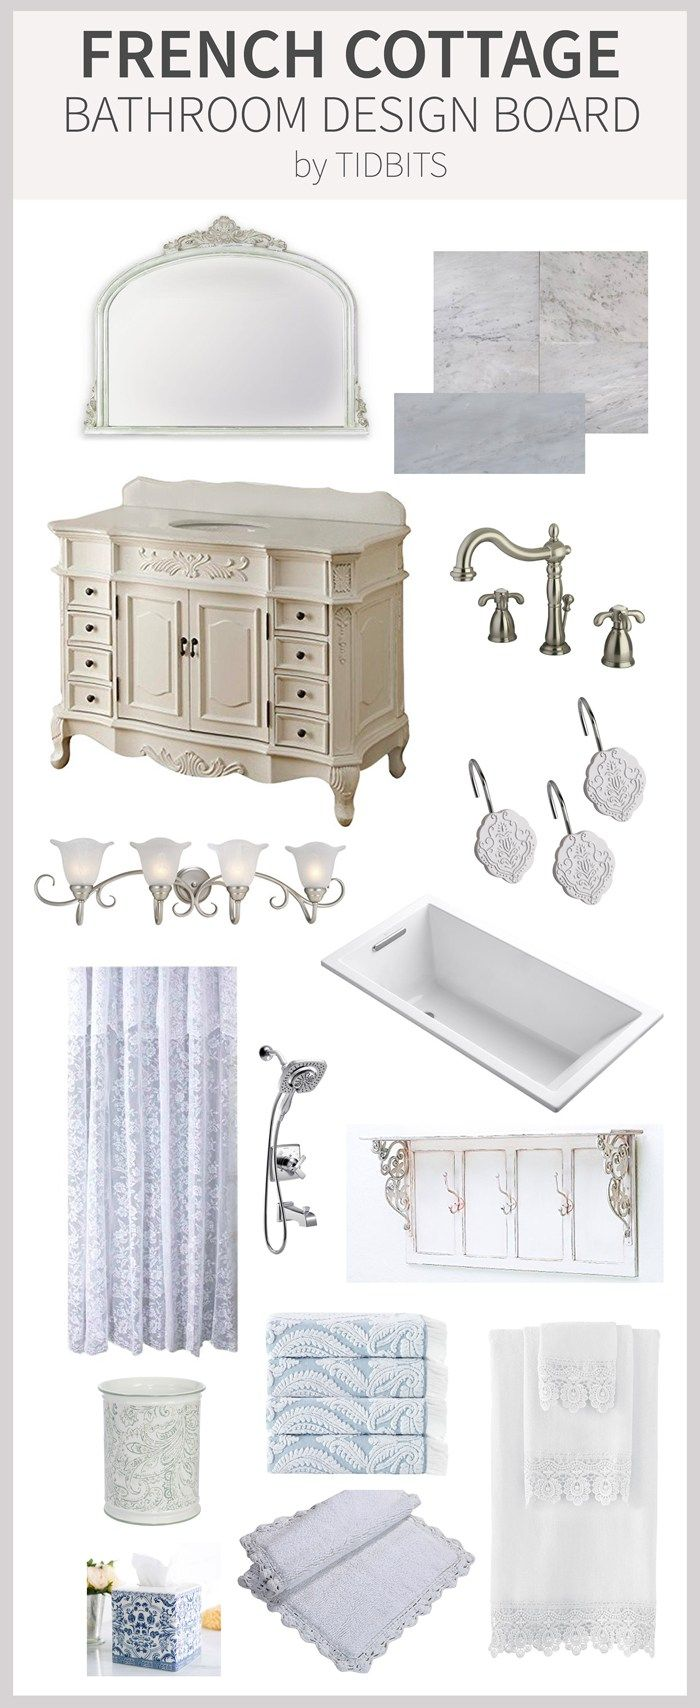 French cottage bathroom design board french cottage for French cottage bathroom design